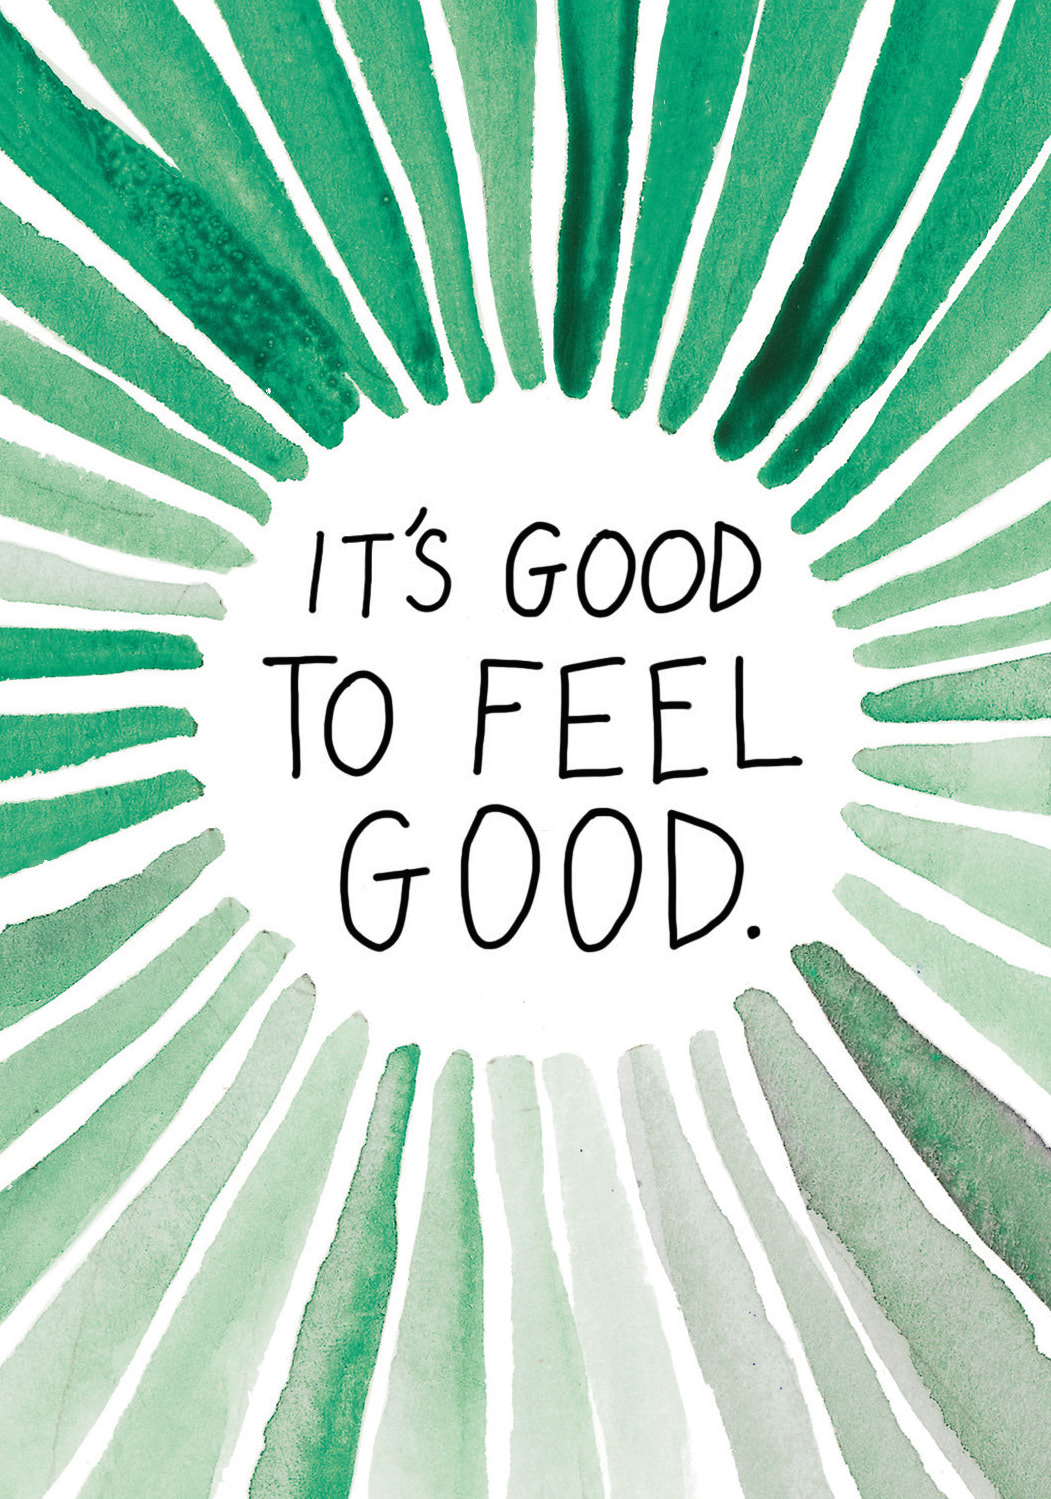 It's good to feel good | Super Attractor card deck by Gabby Bernstein